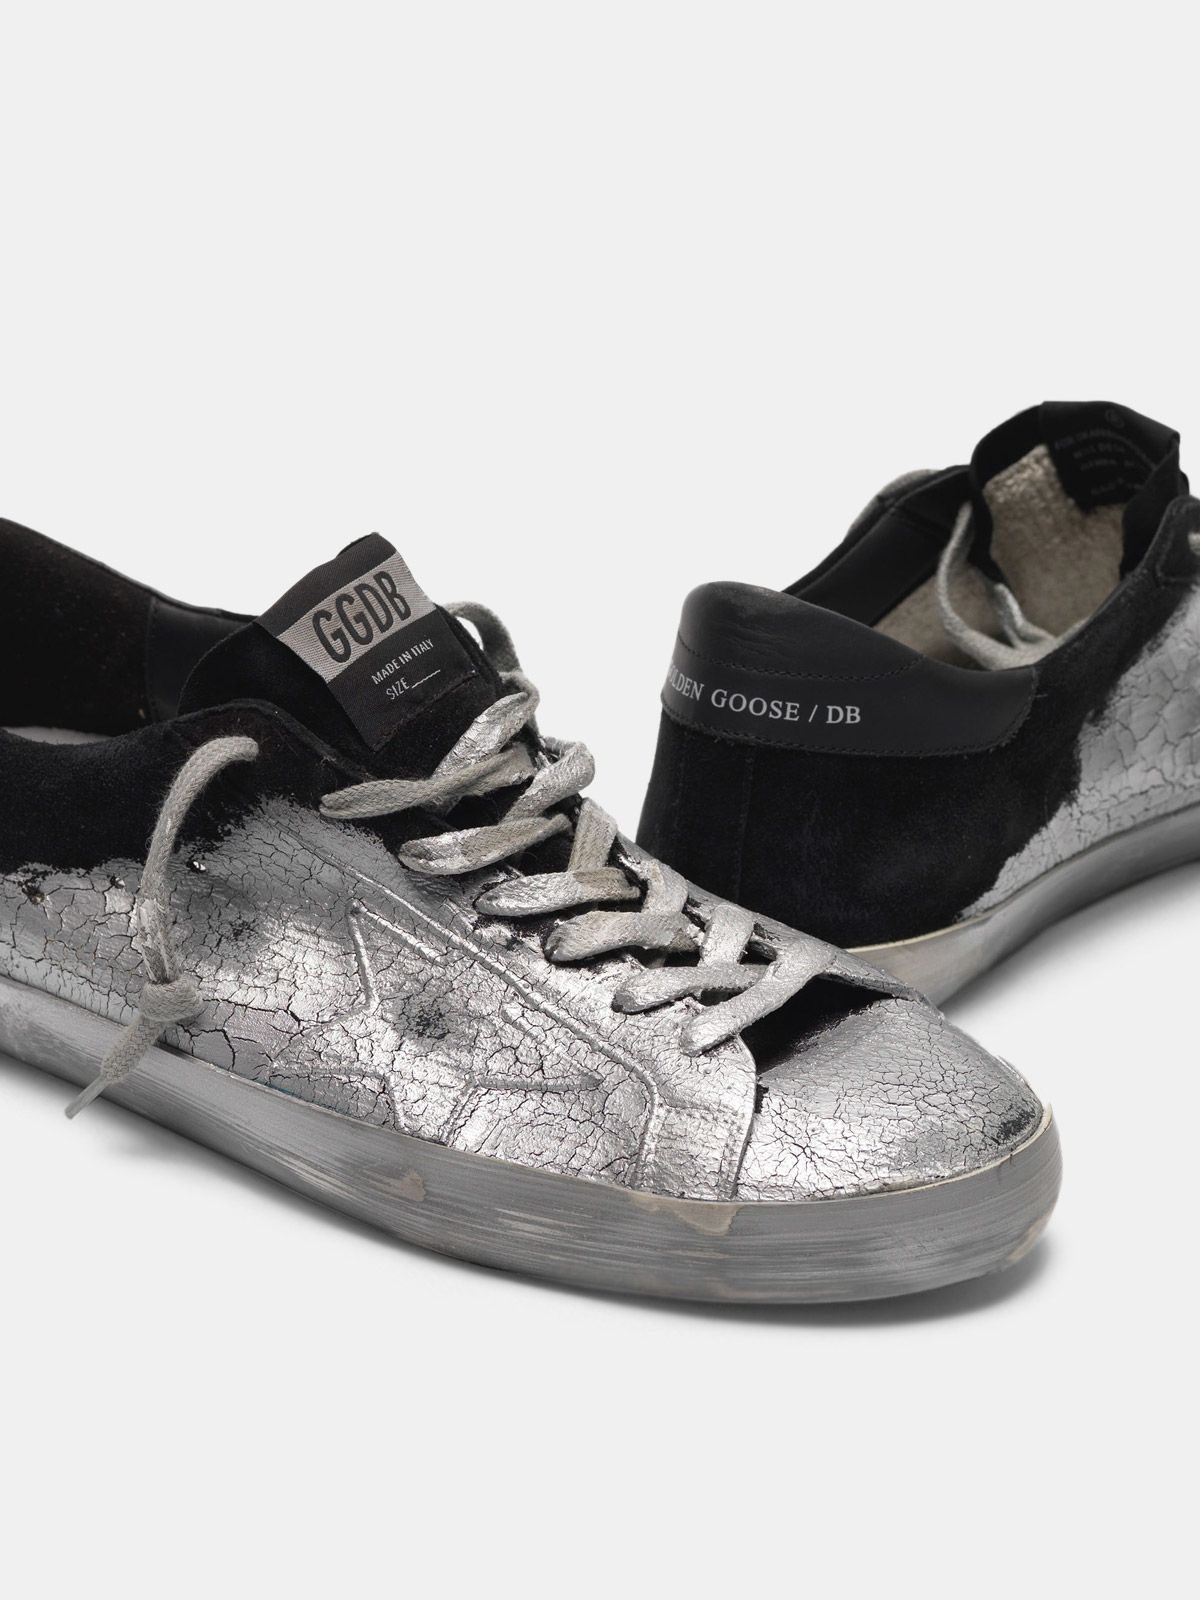 Golden Goose - Sneakers Super-Star lavorate con vernice effetto cracklé in